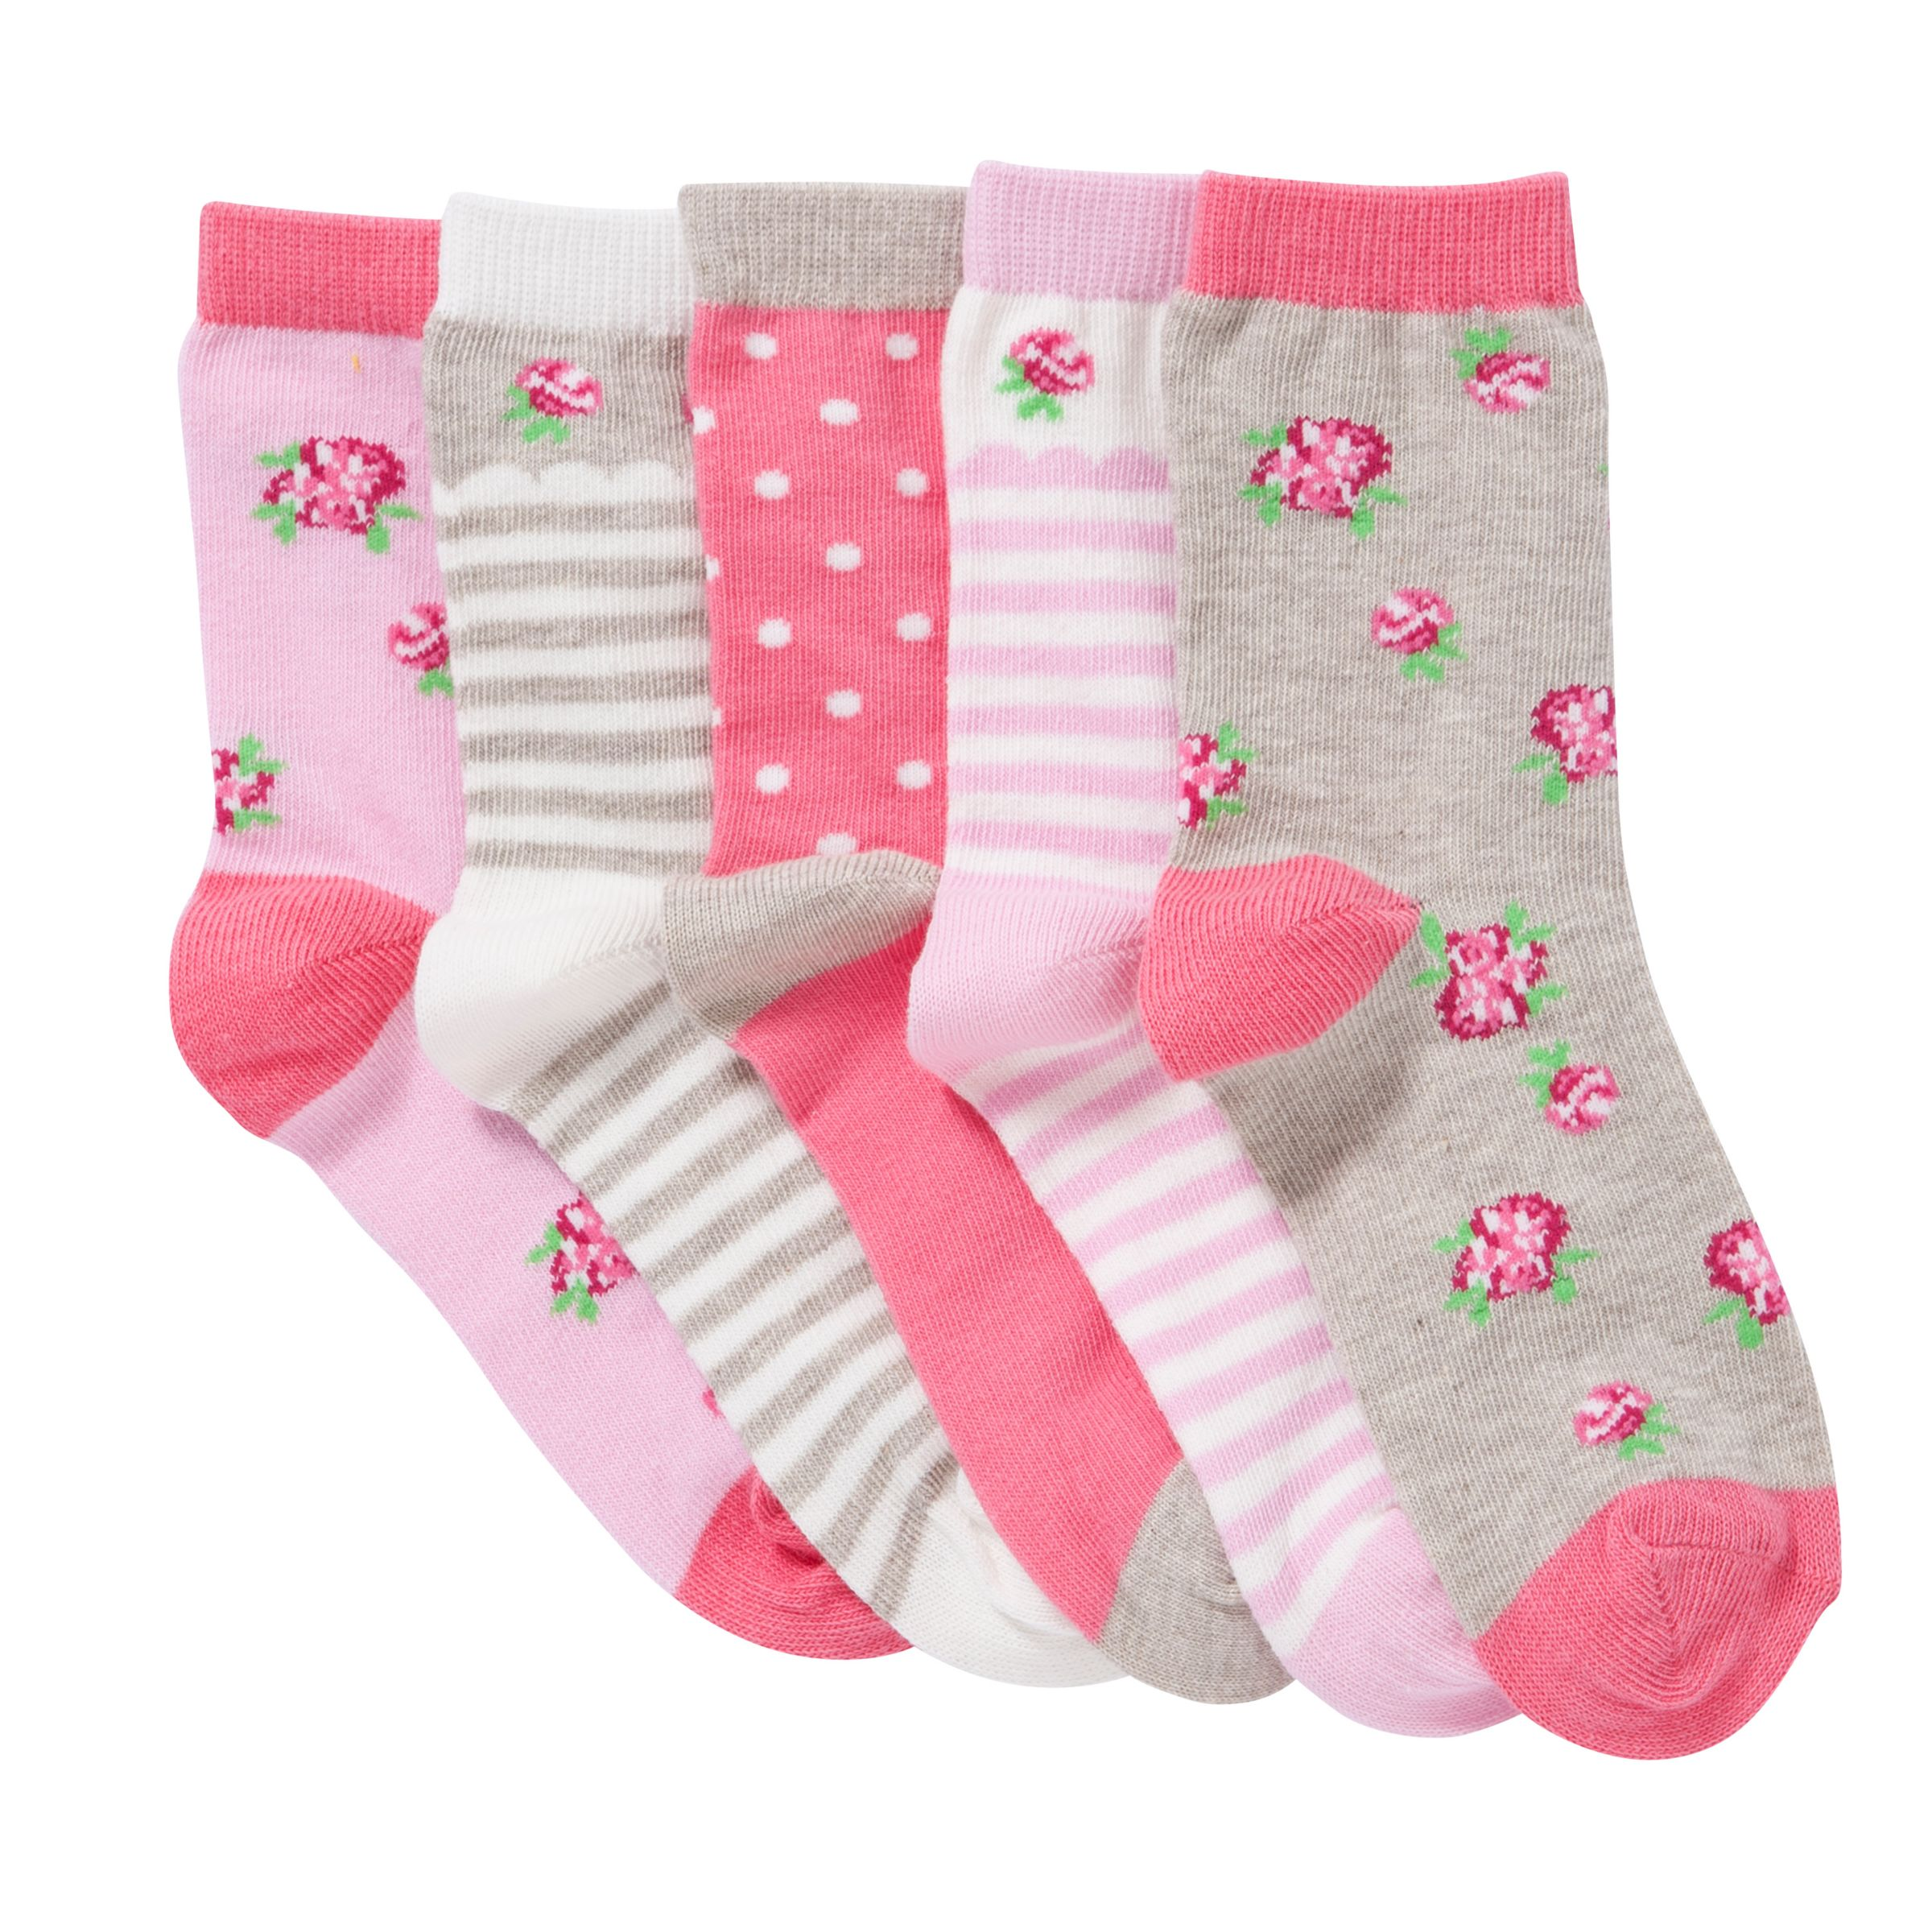 John Lewis Girl Vintage Rose Socks, Pack of 5, Pink